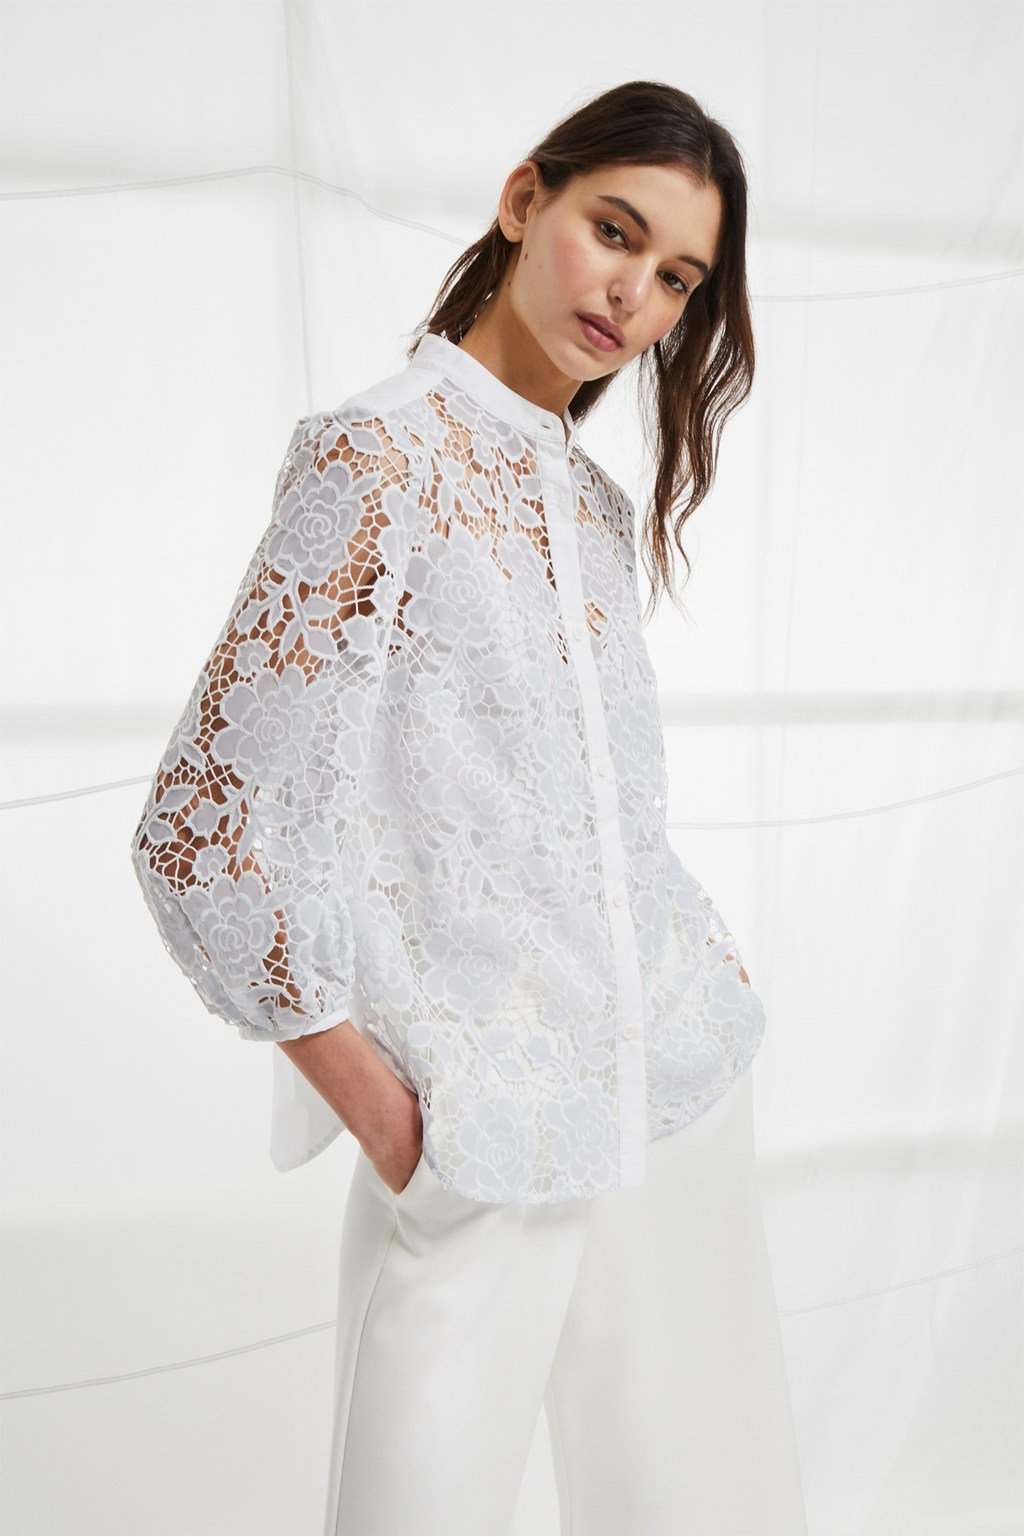 8dbe4003d26be Chania Lace Puff Sleeve Shirt. loading images.